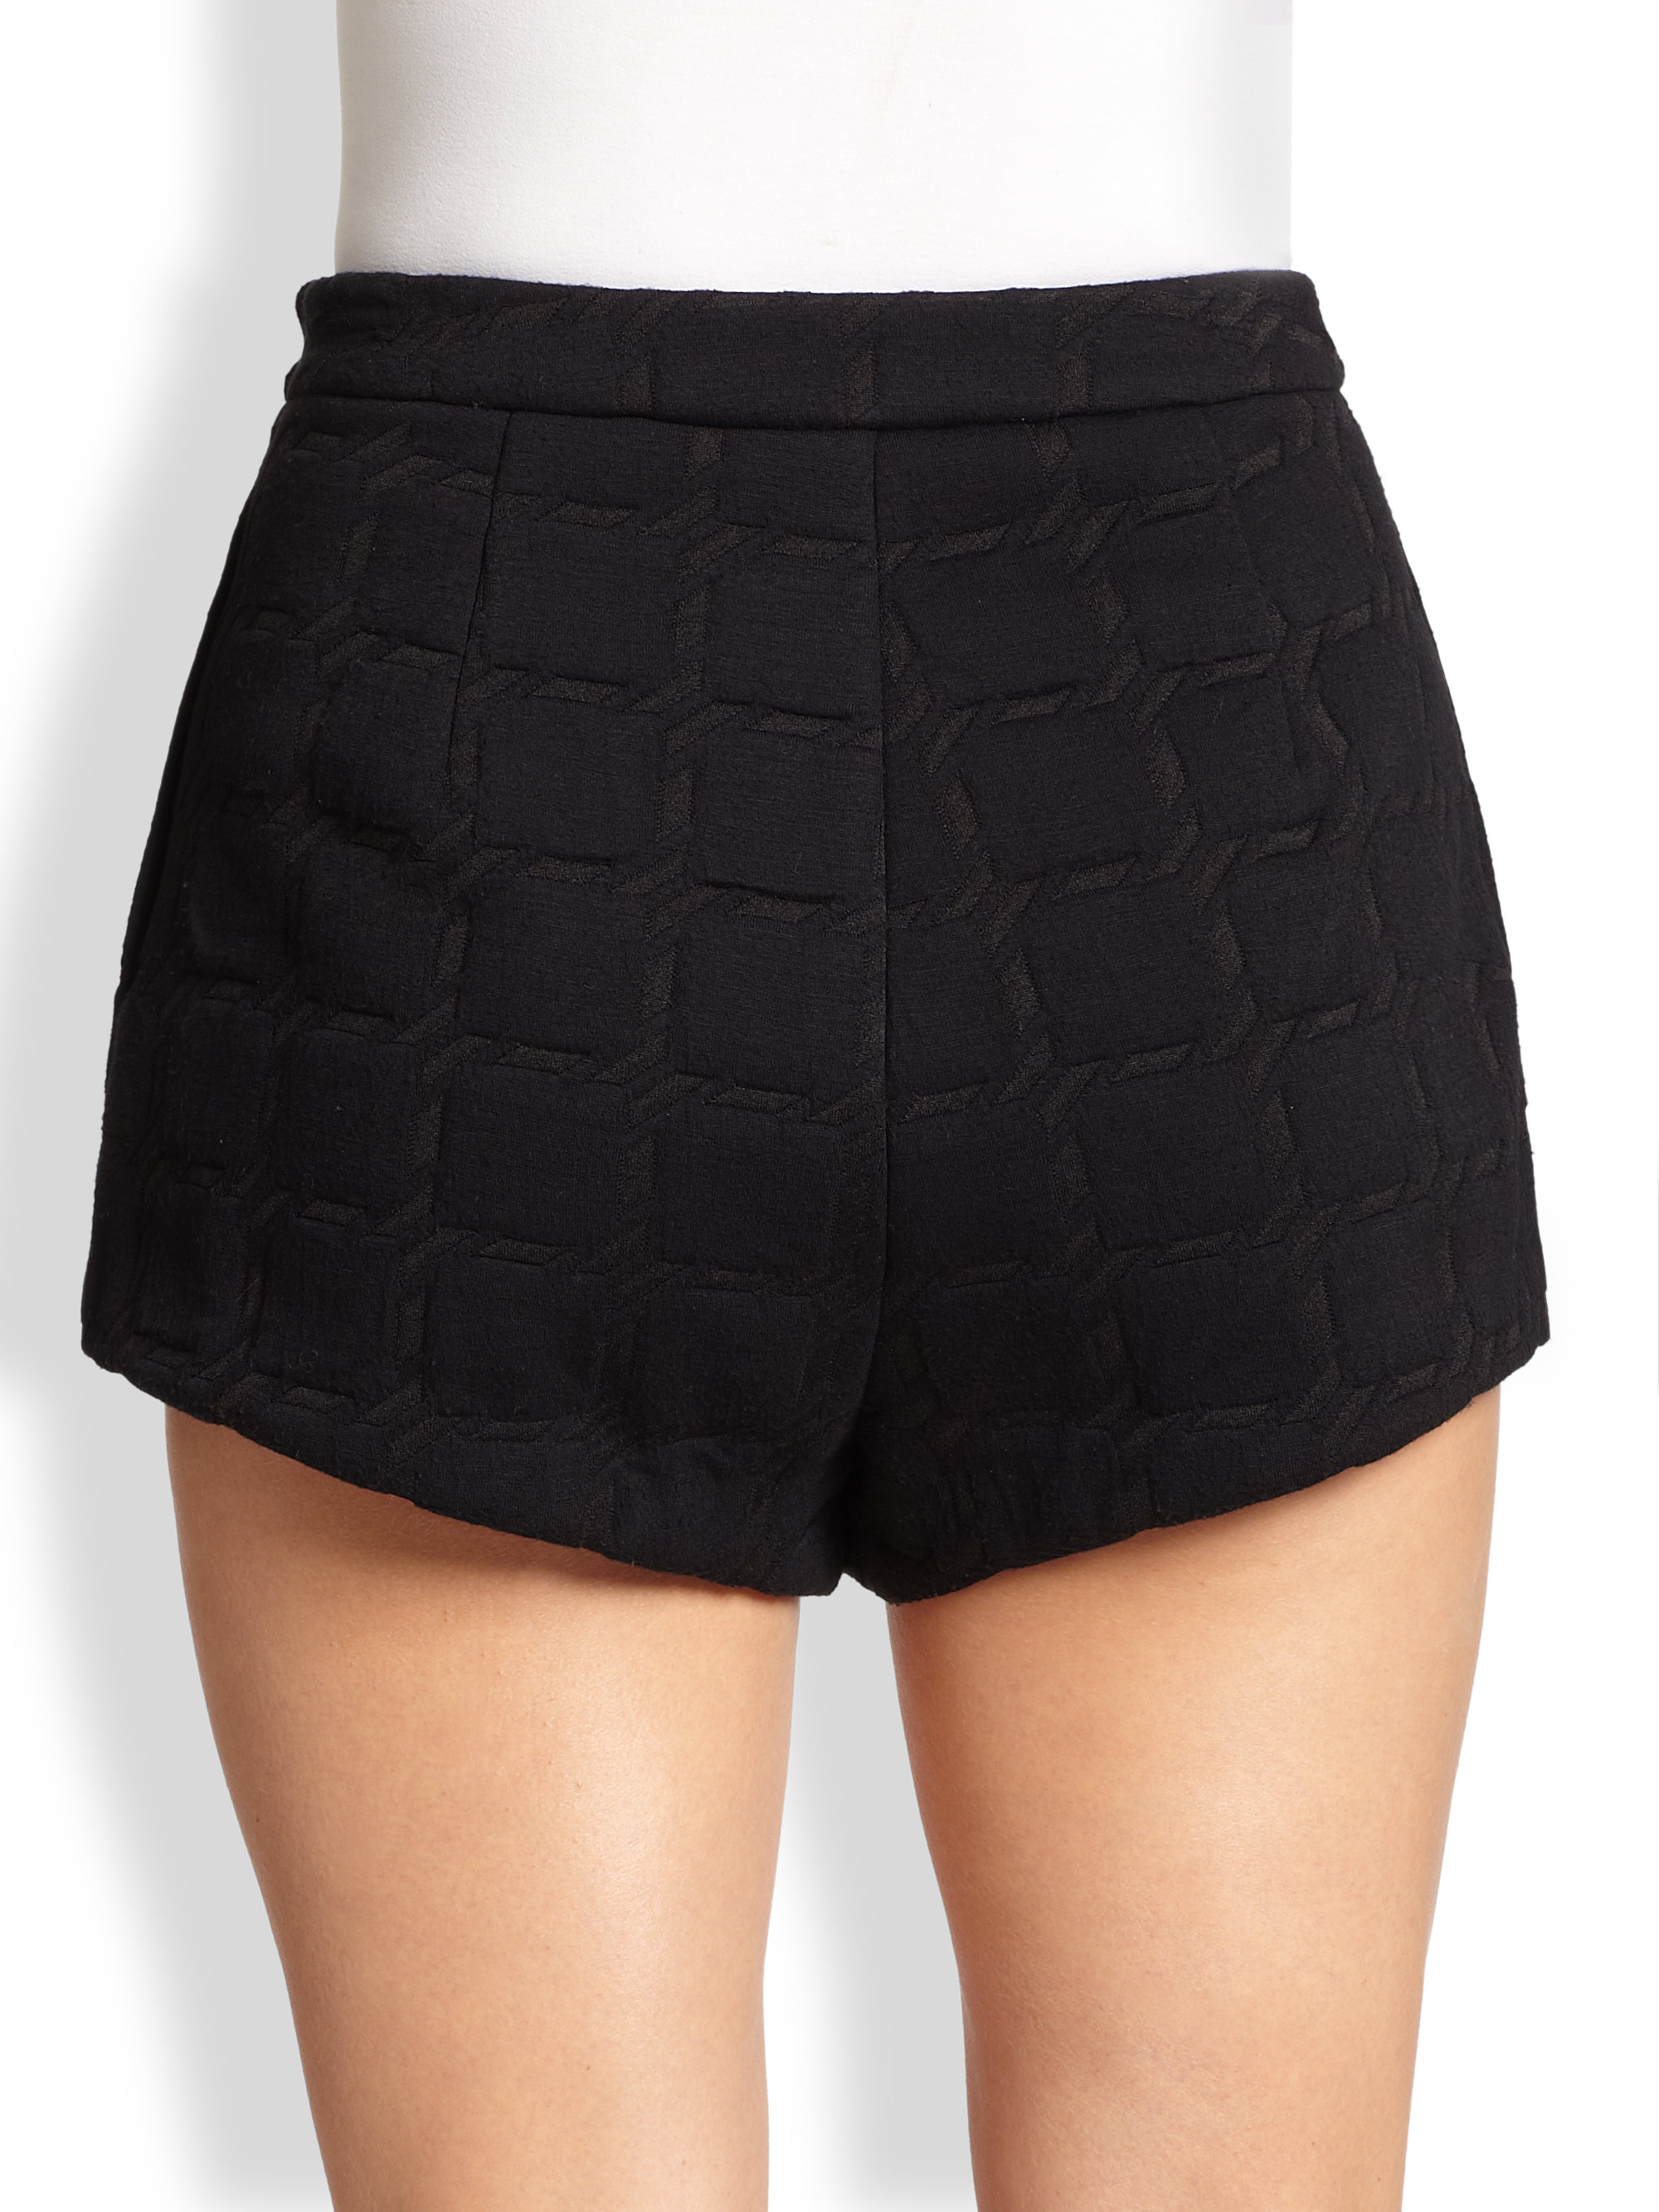 T by Alexander Wang High-Rise Mini Shorts w/ Tags Discounts Sale Online Free Shipping Prices Outlet Discounts Free Shipping Cheapest T8G3Ecz1A